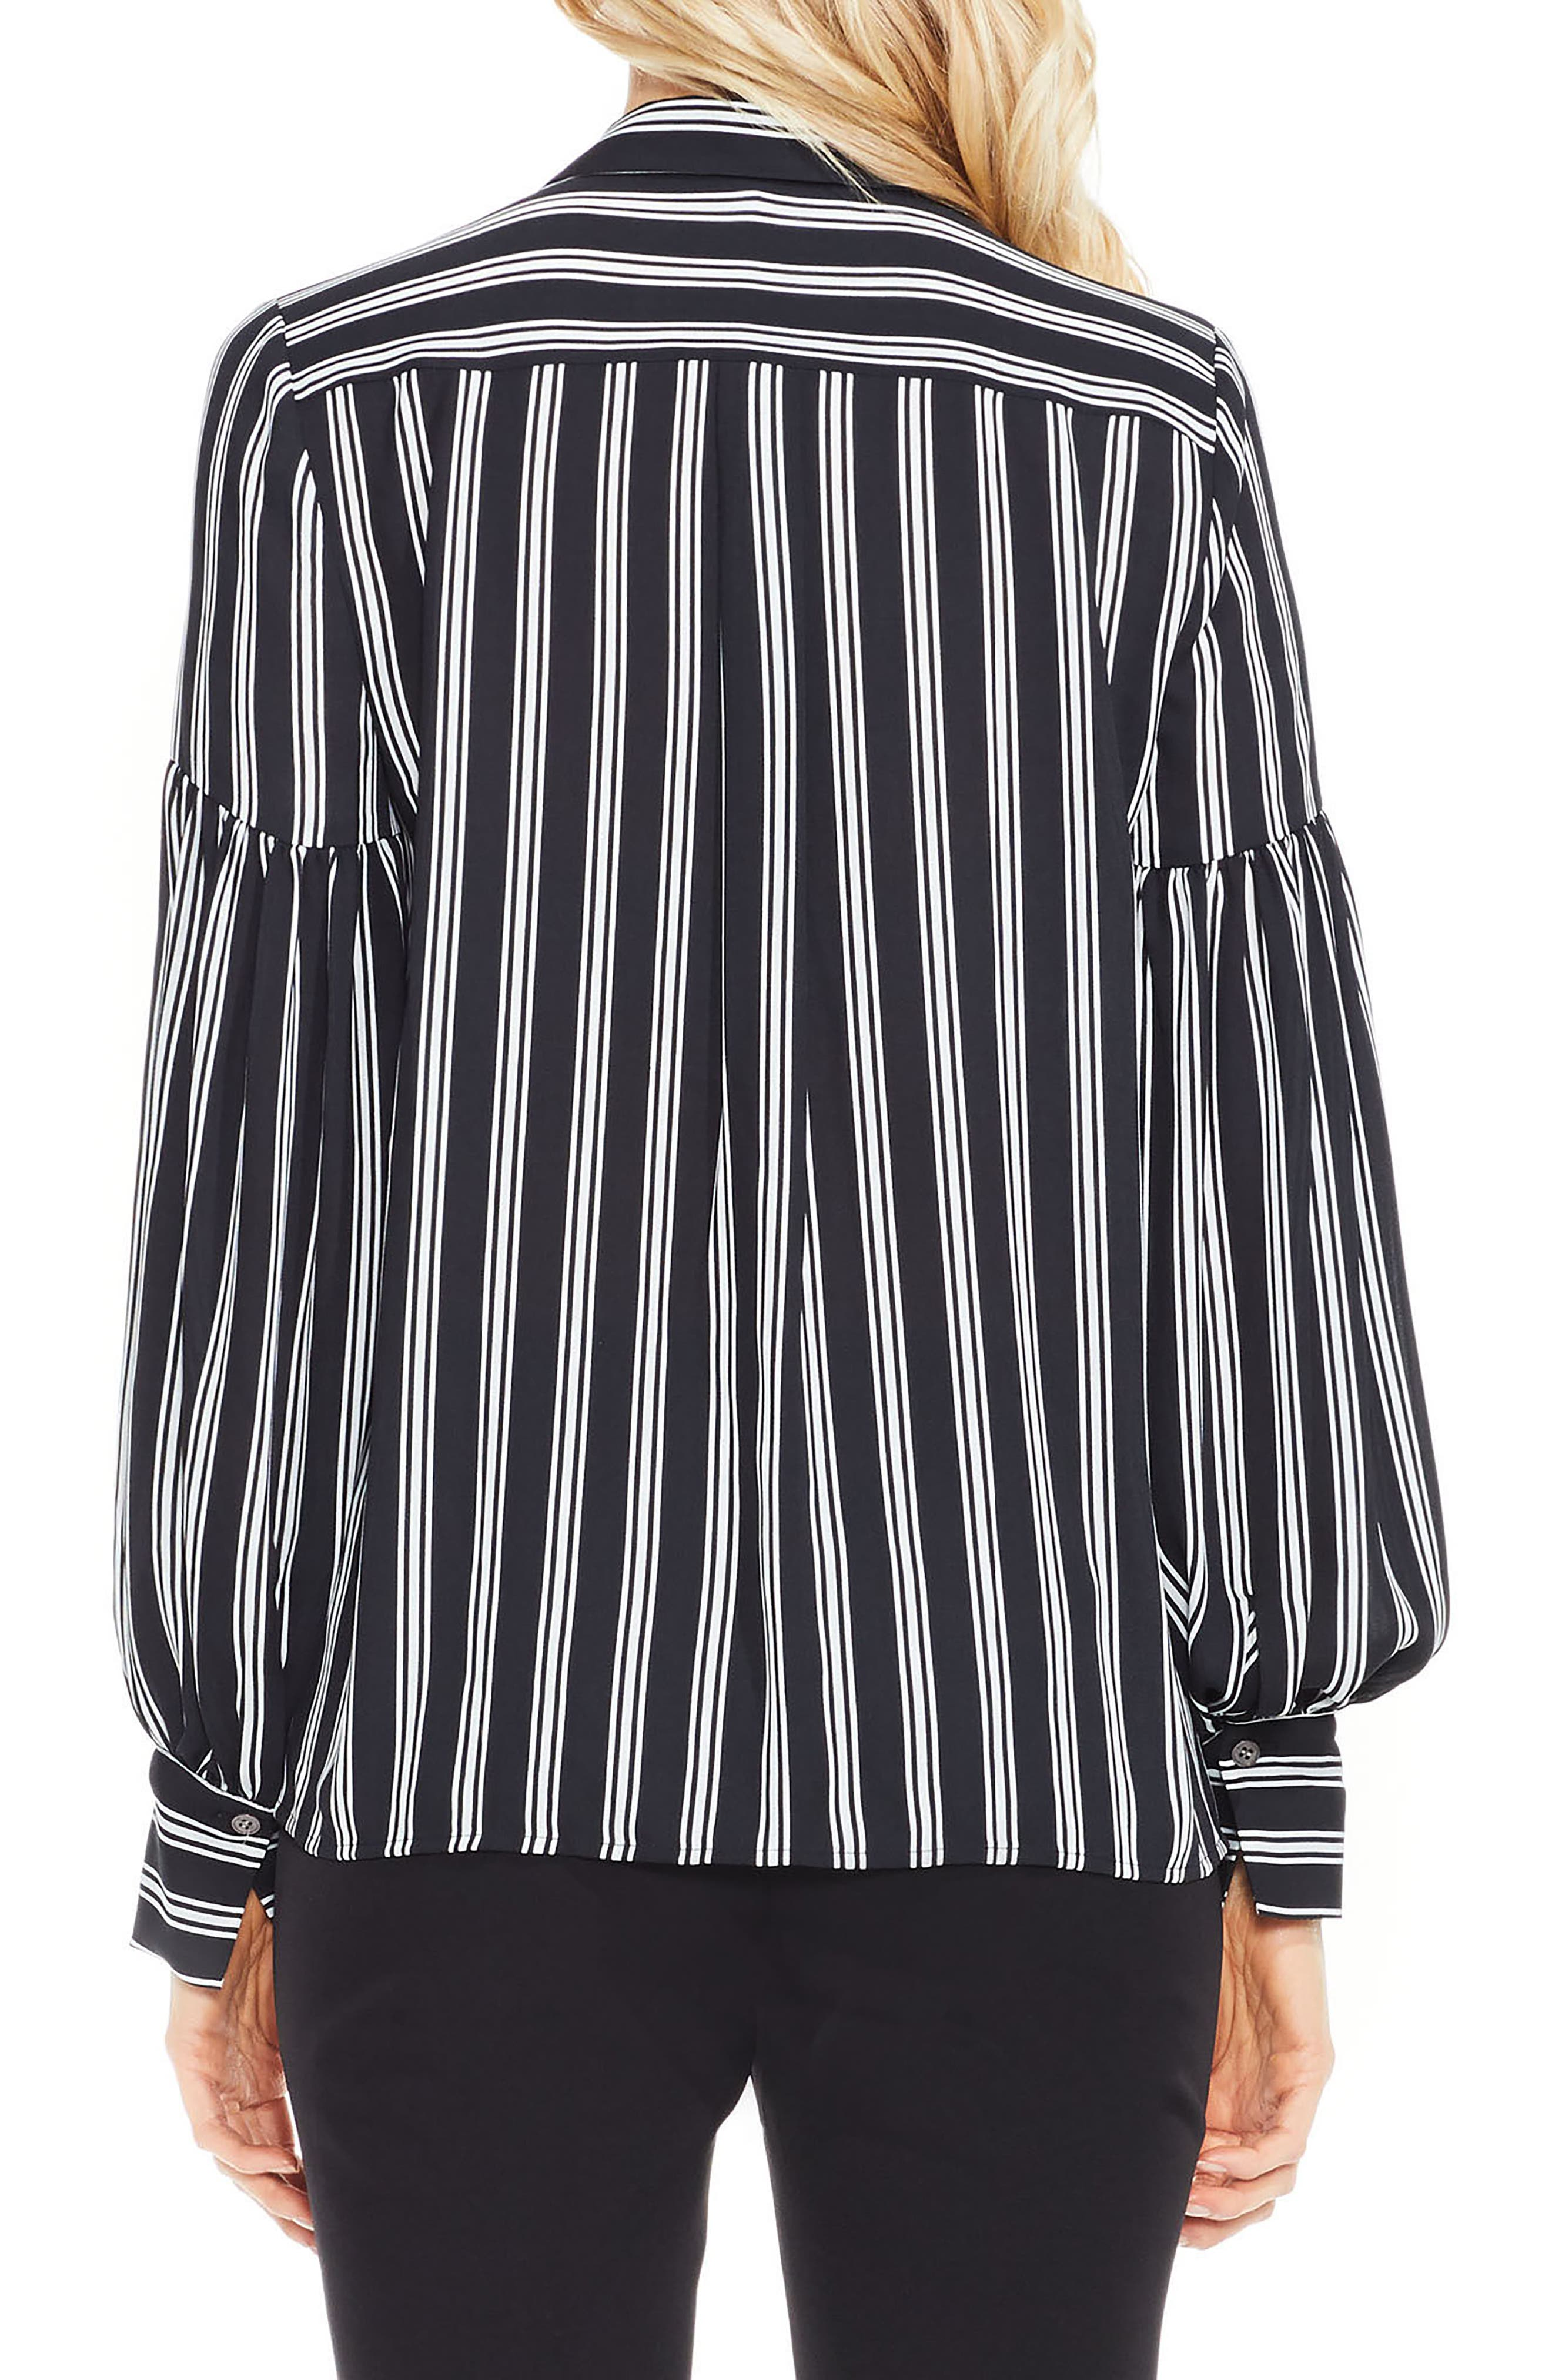 Stripe Puff Sleeve Blouse,                             Alternate thumbnail 2, color,                             006